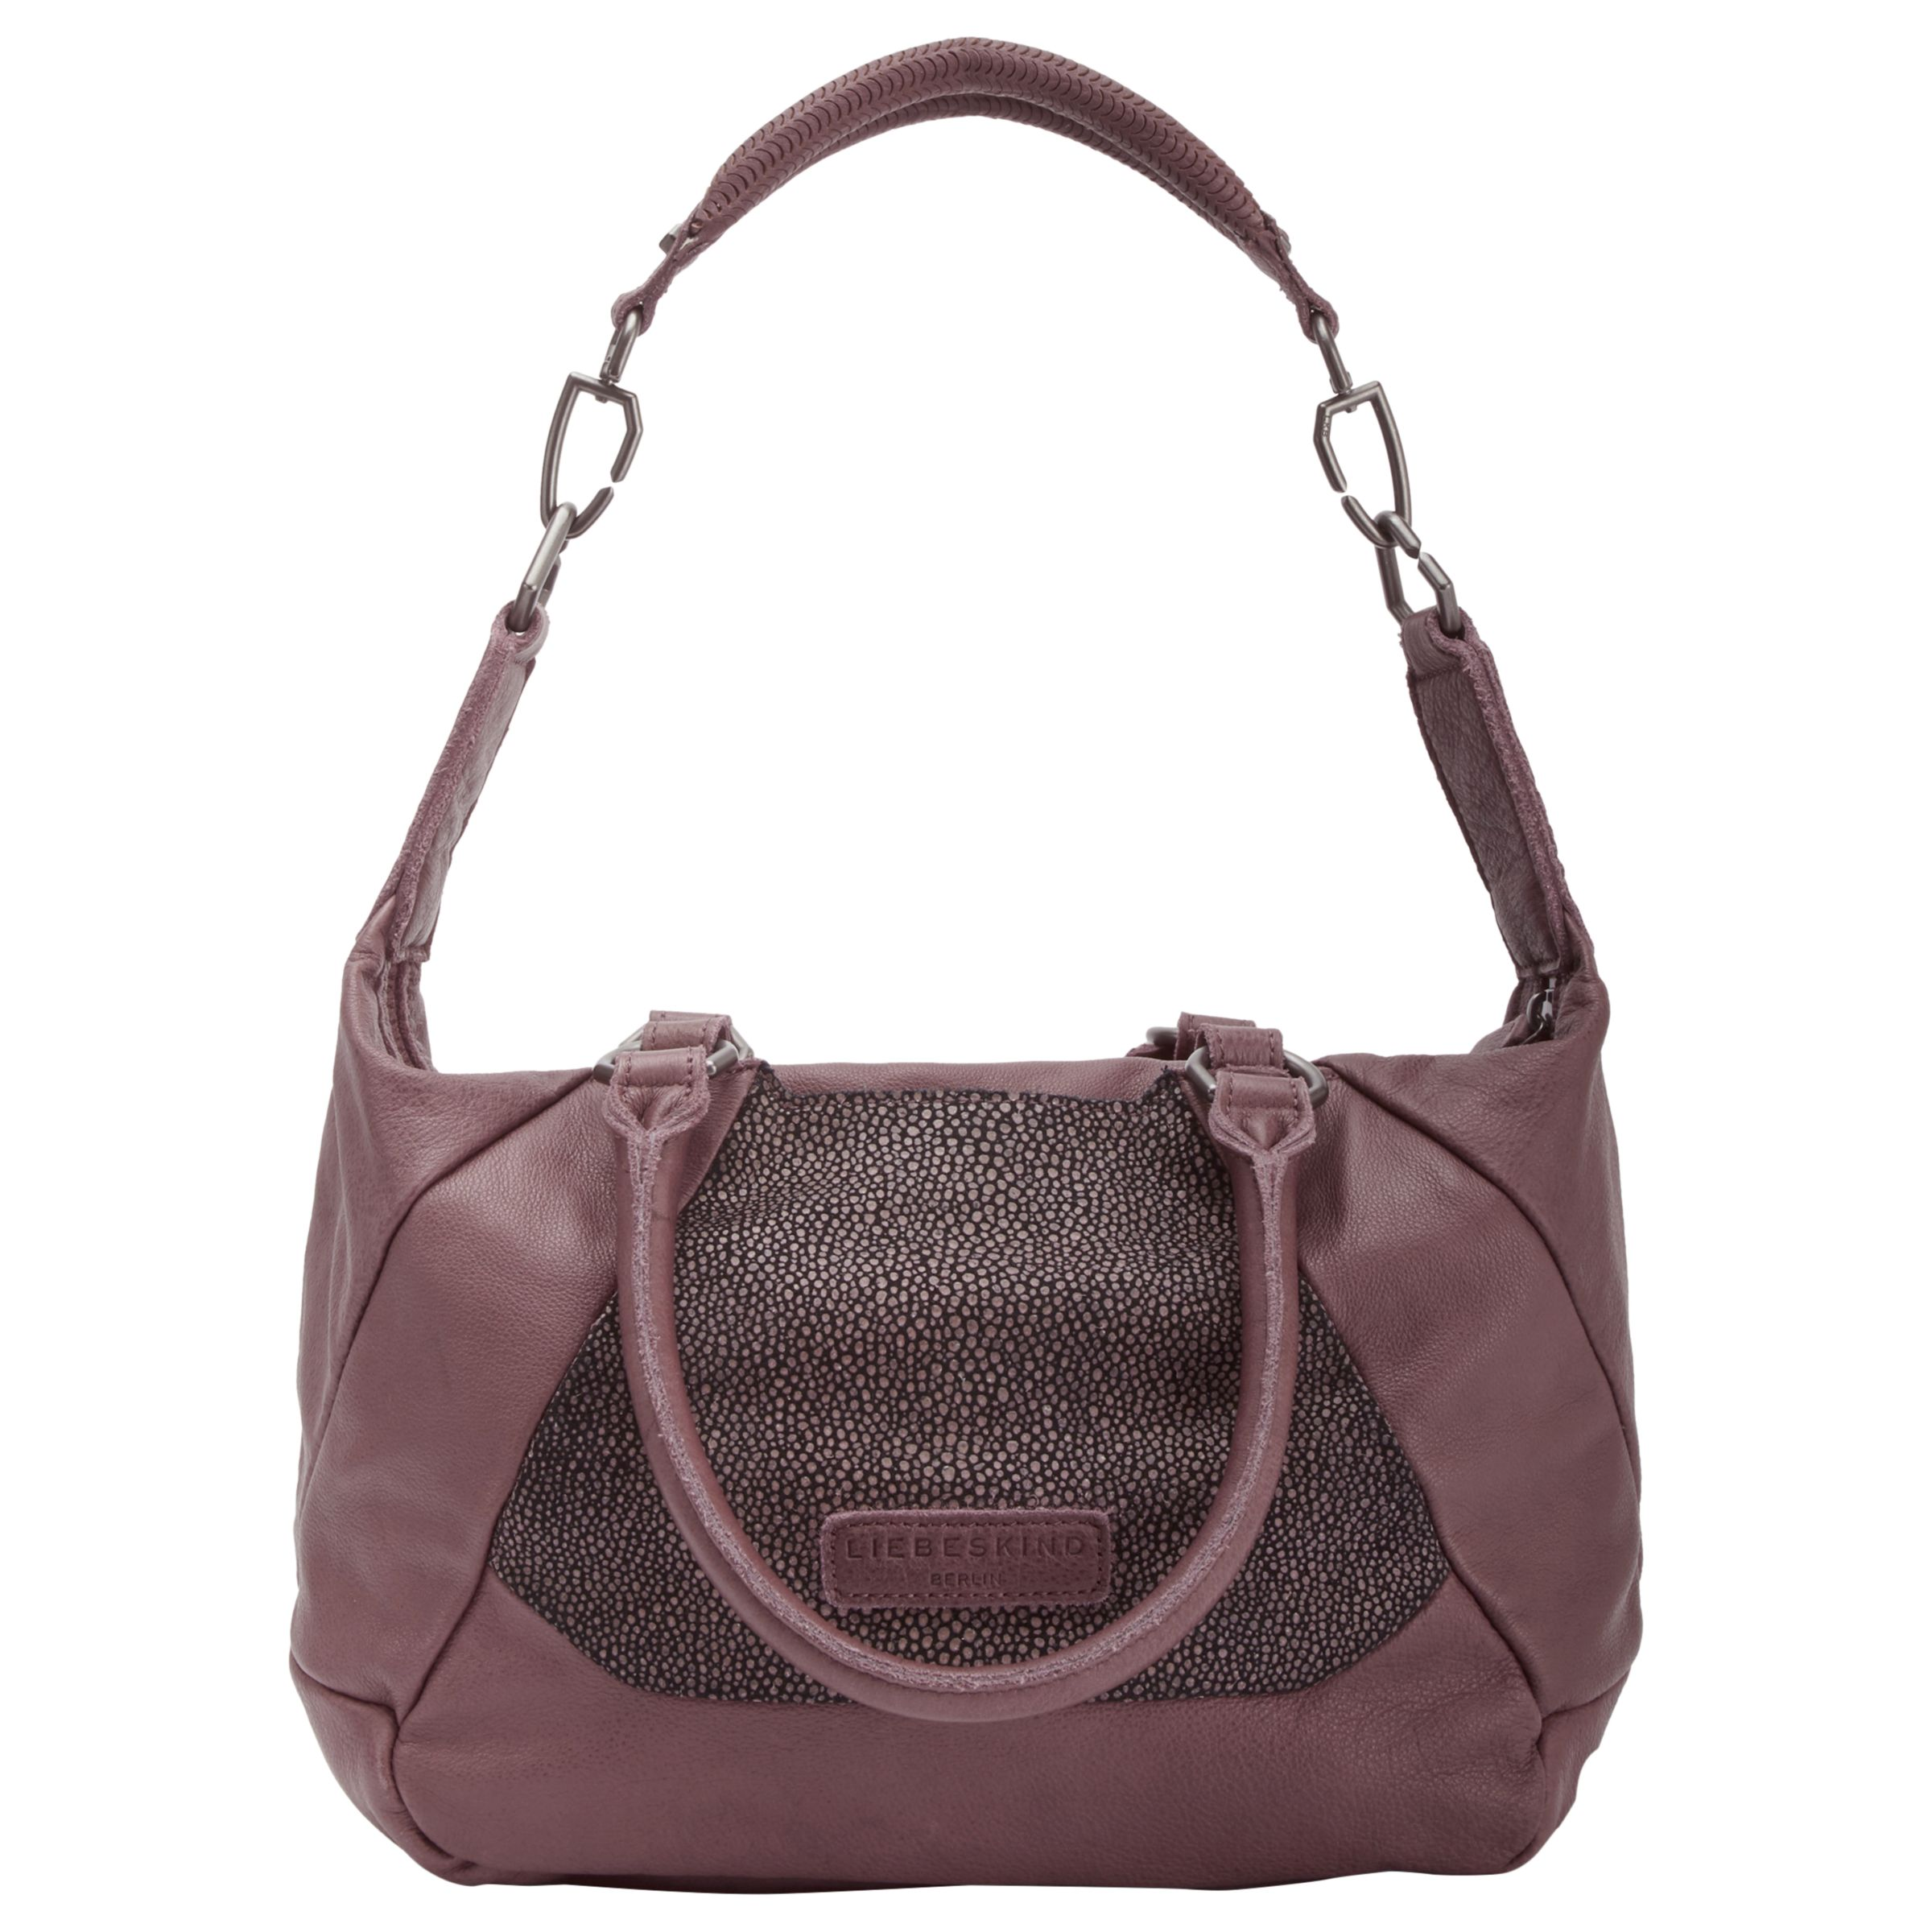 Liebeskind Liebeskind Bailundo Leather Shoulder Bag, Massai Plump